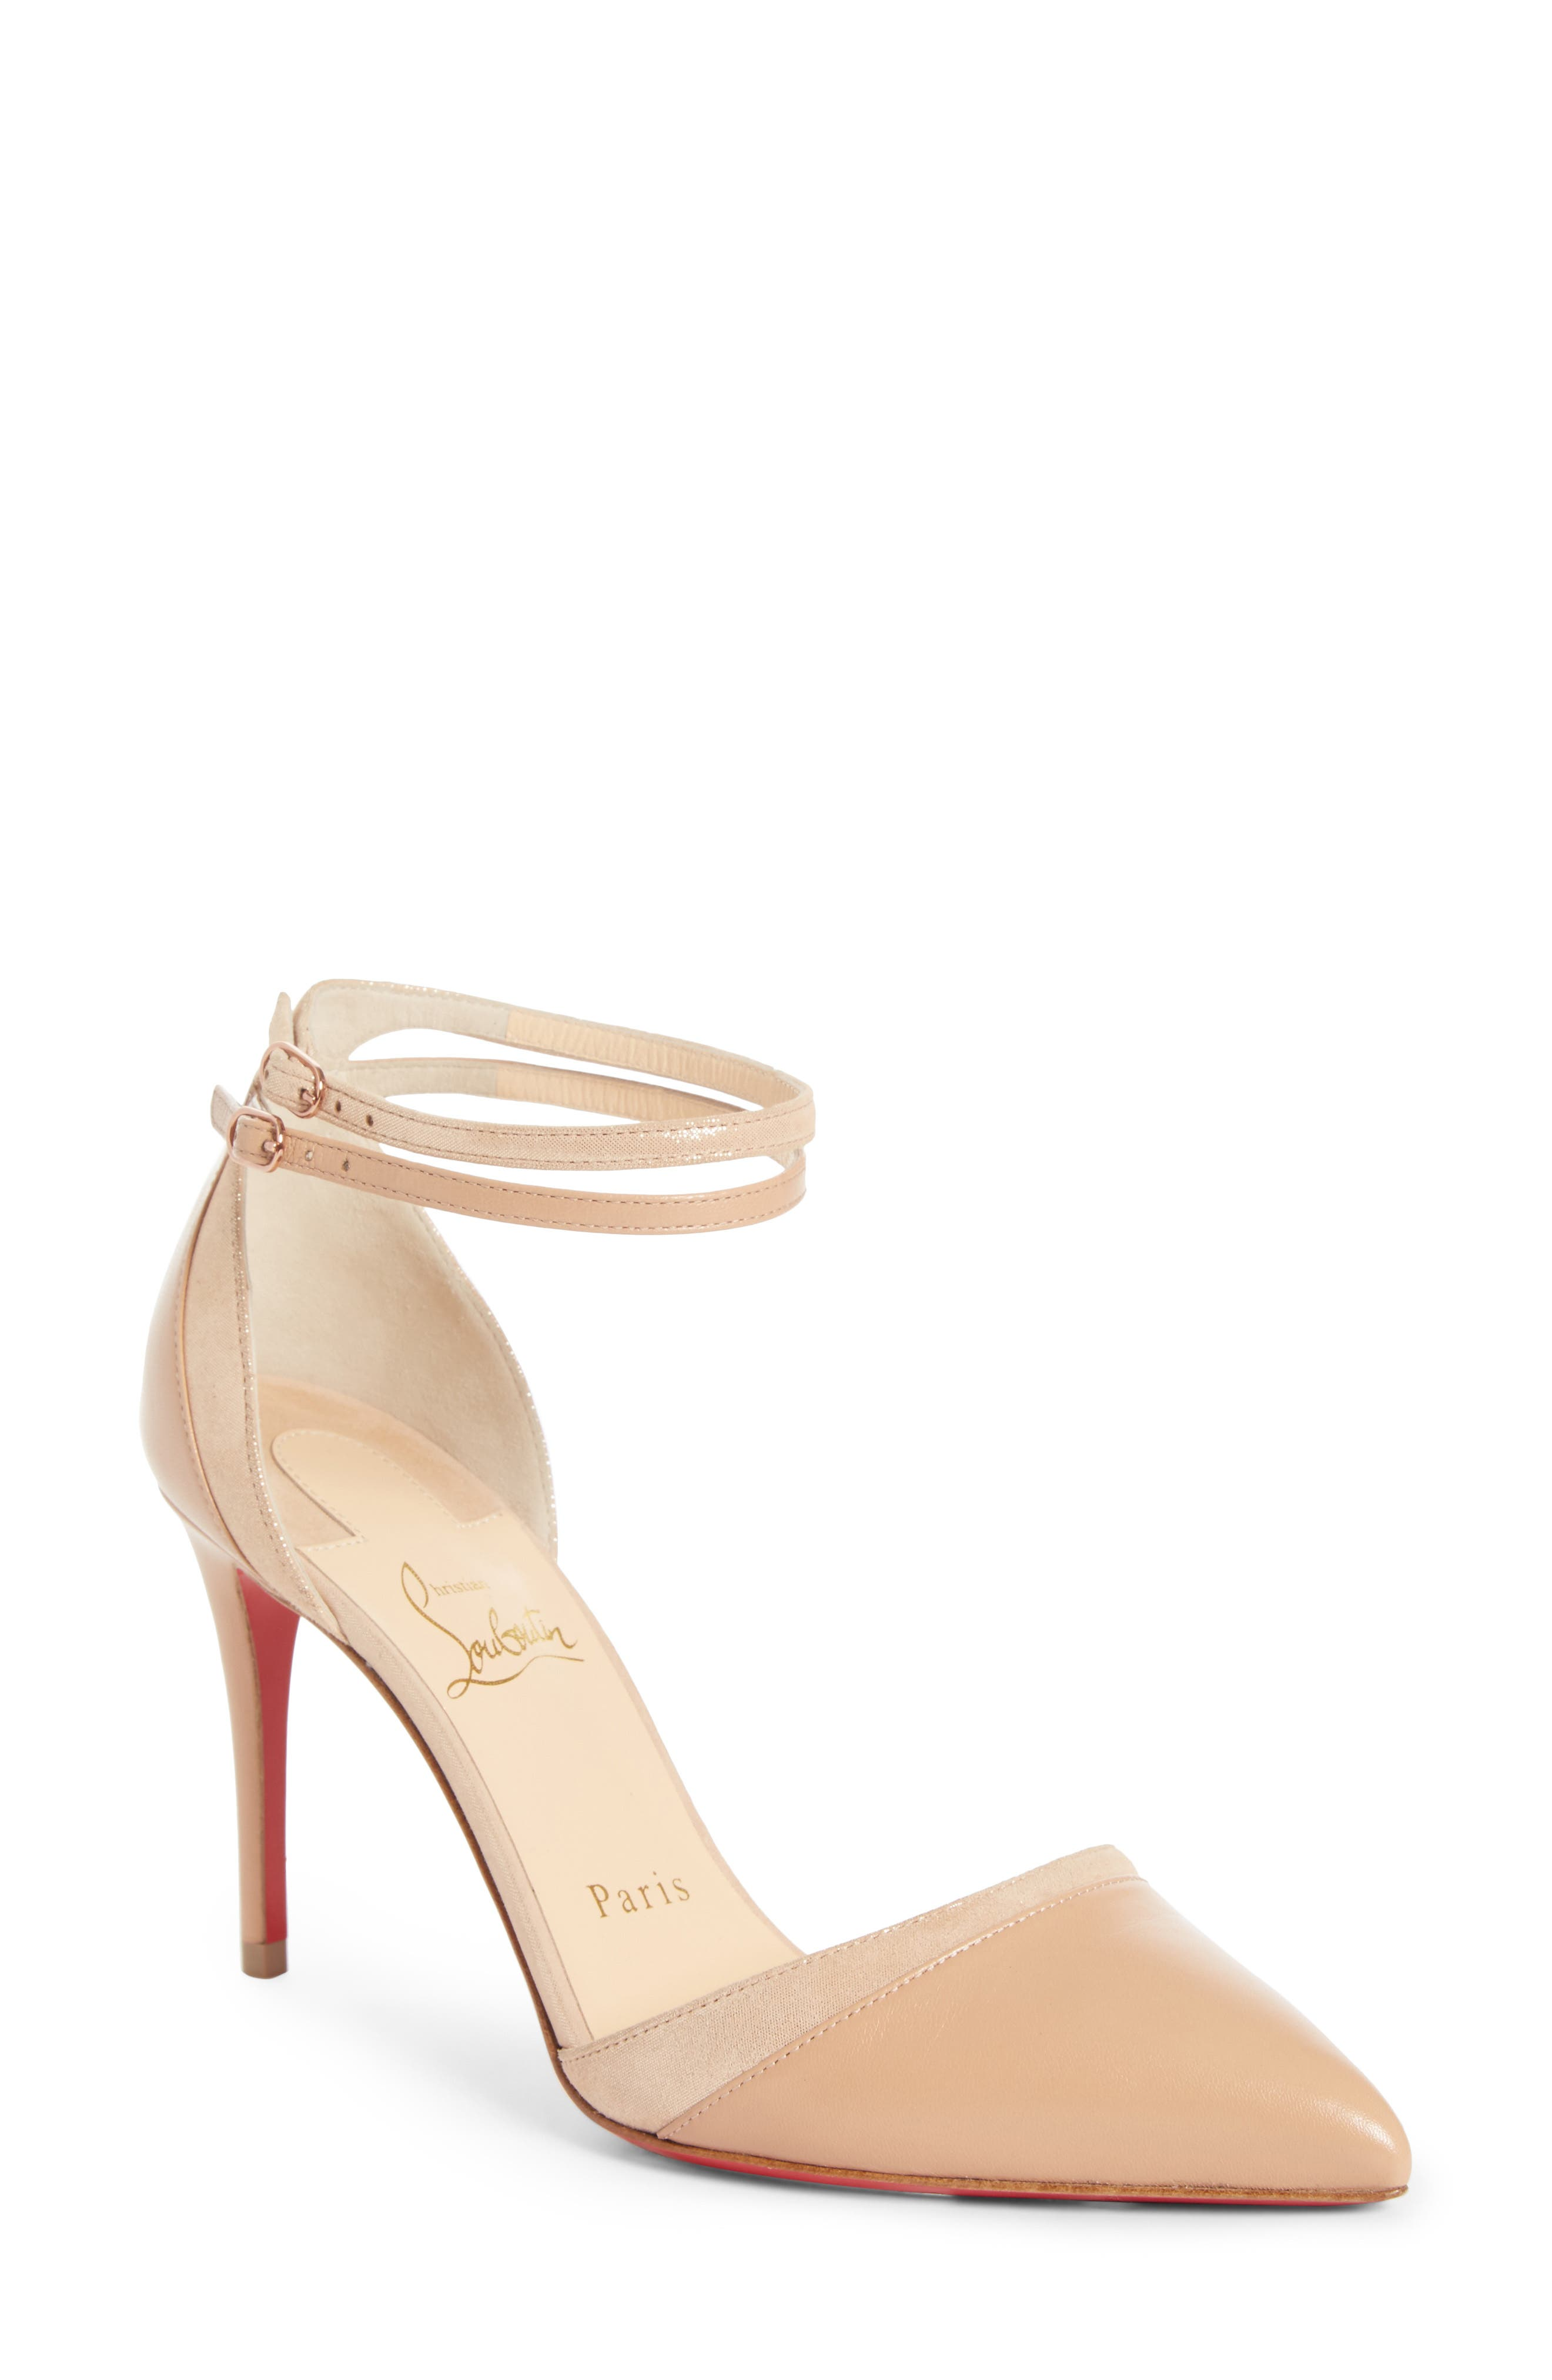 Uptown Ankle Strap Pump,                         Main,                         color, Nude